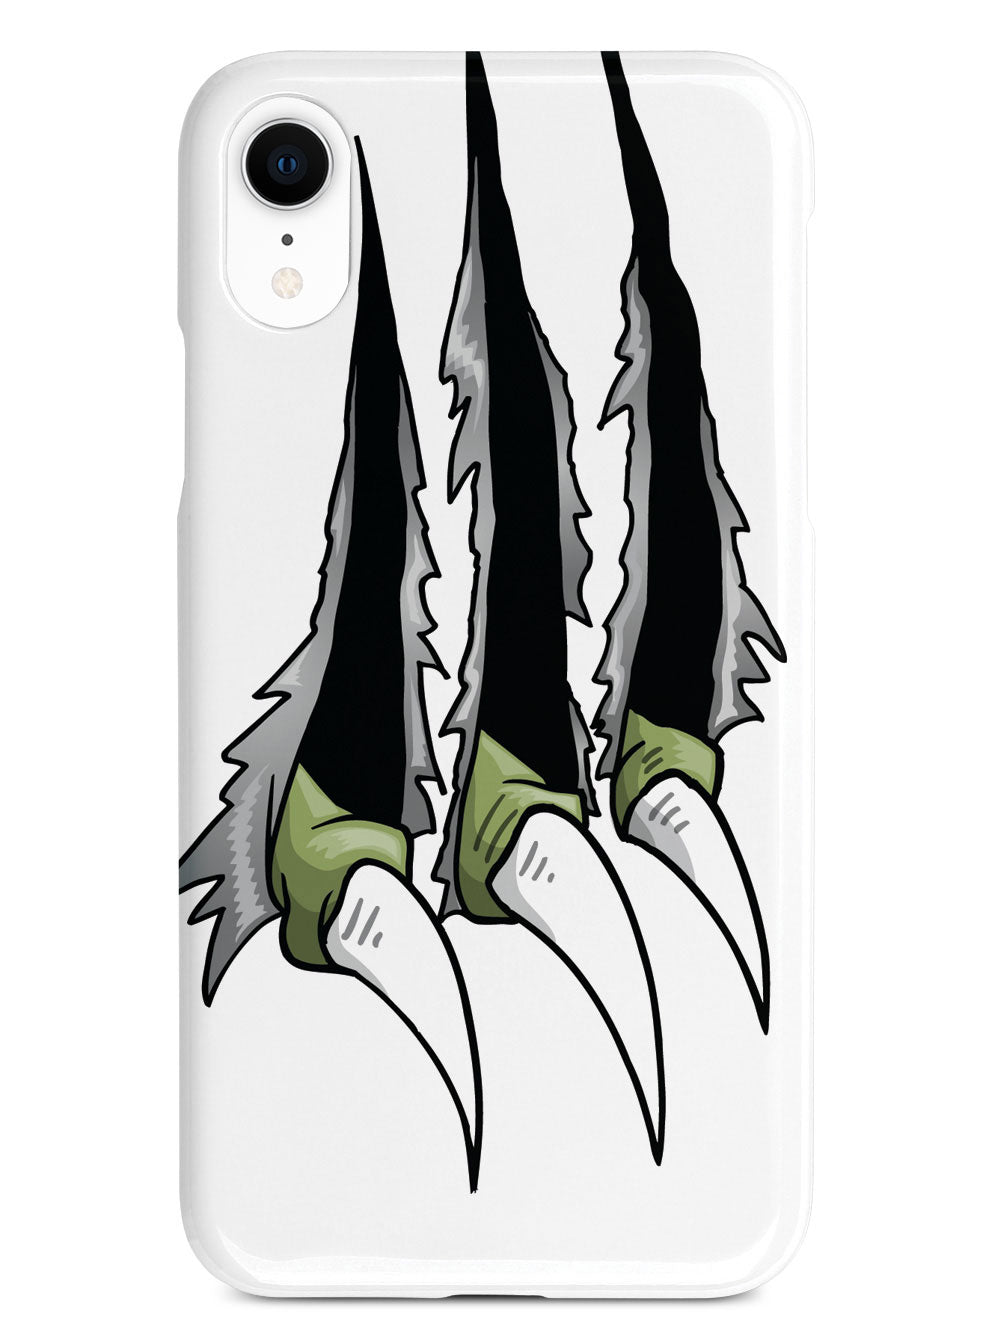 Monster Claw Case